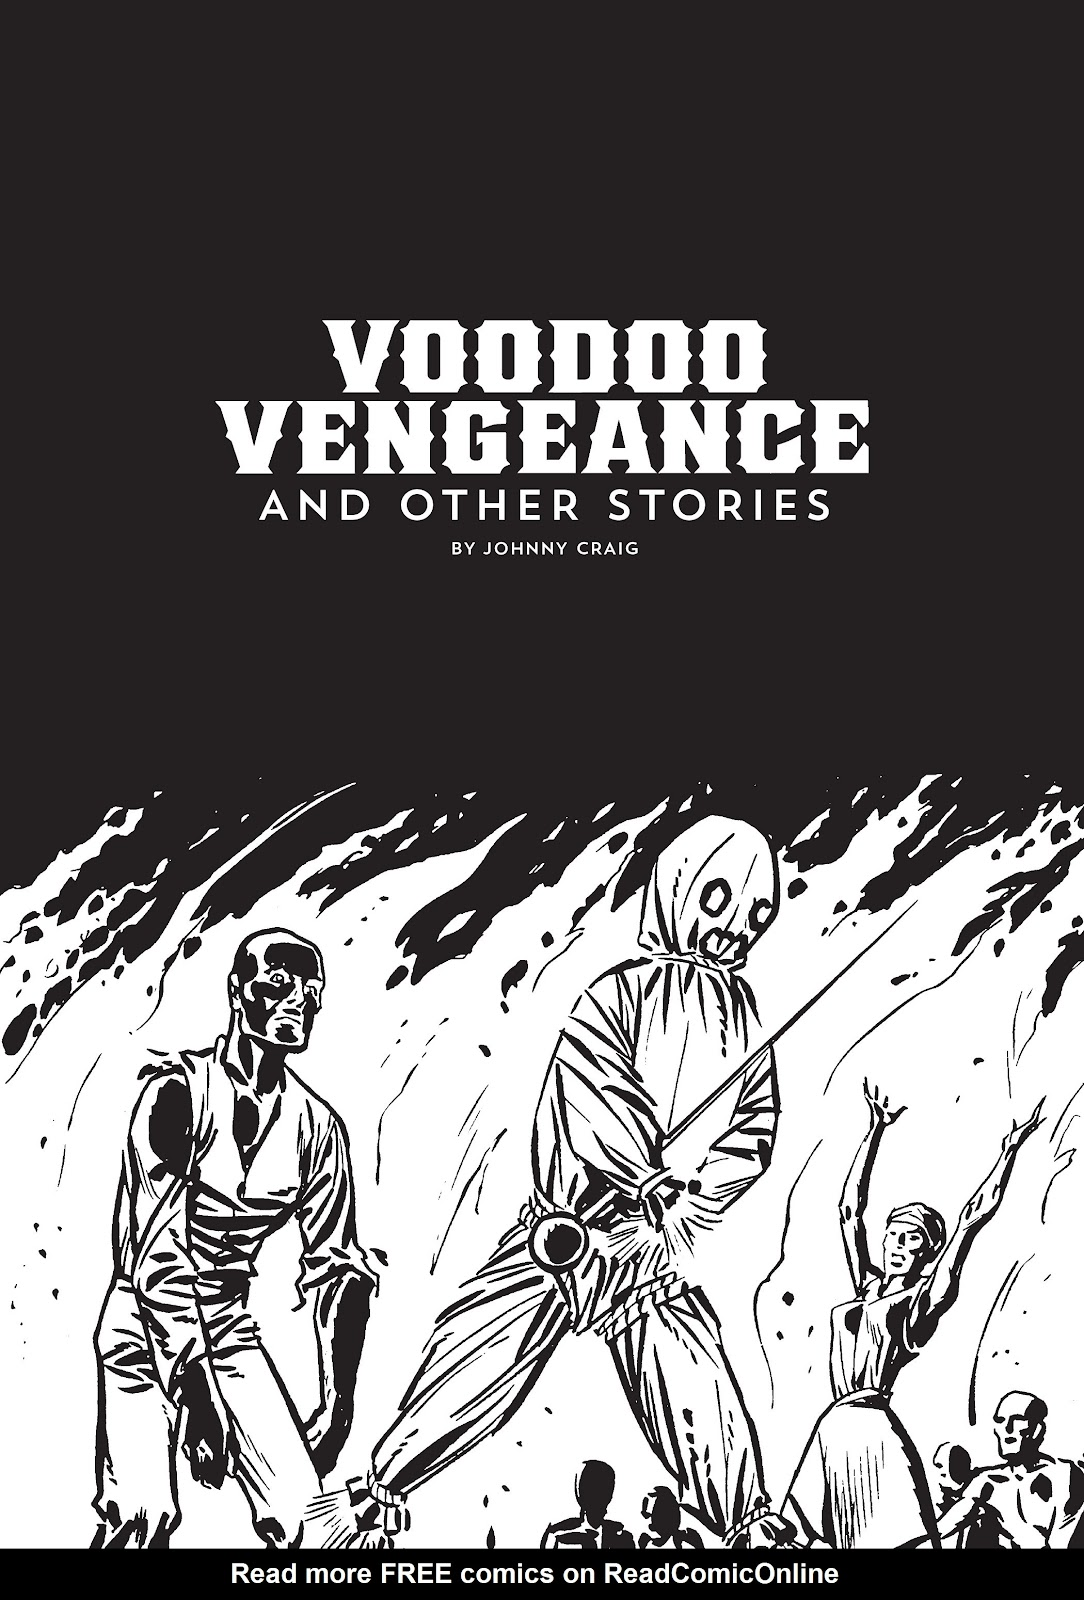 Read online Voodoo Vengeance and Other Stories comic -  Issue # TPB (Part 1) - 2